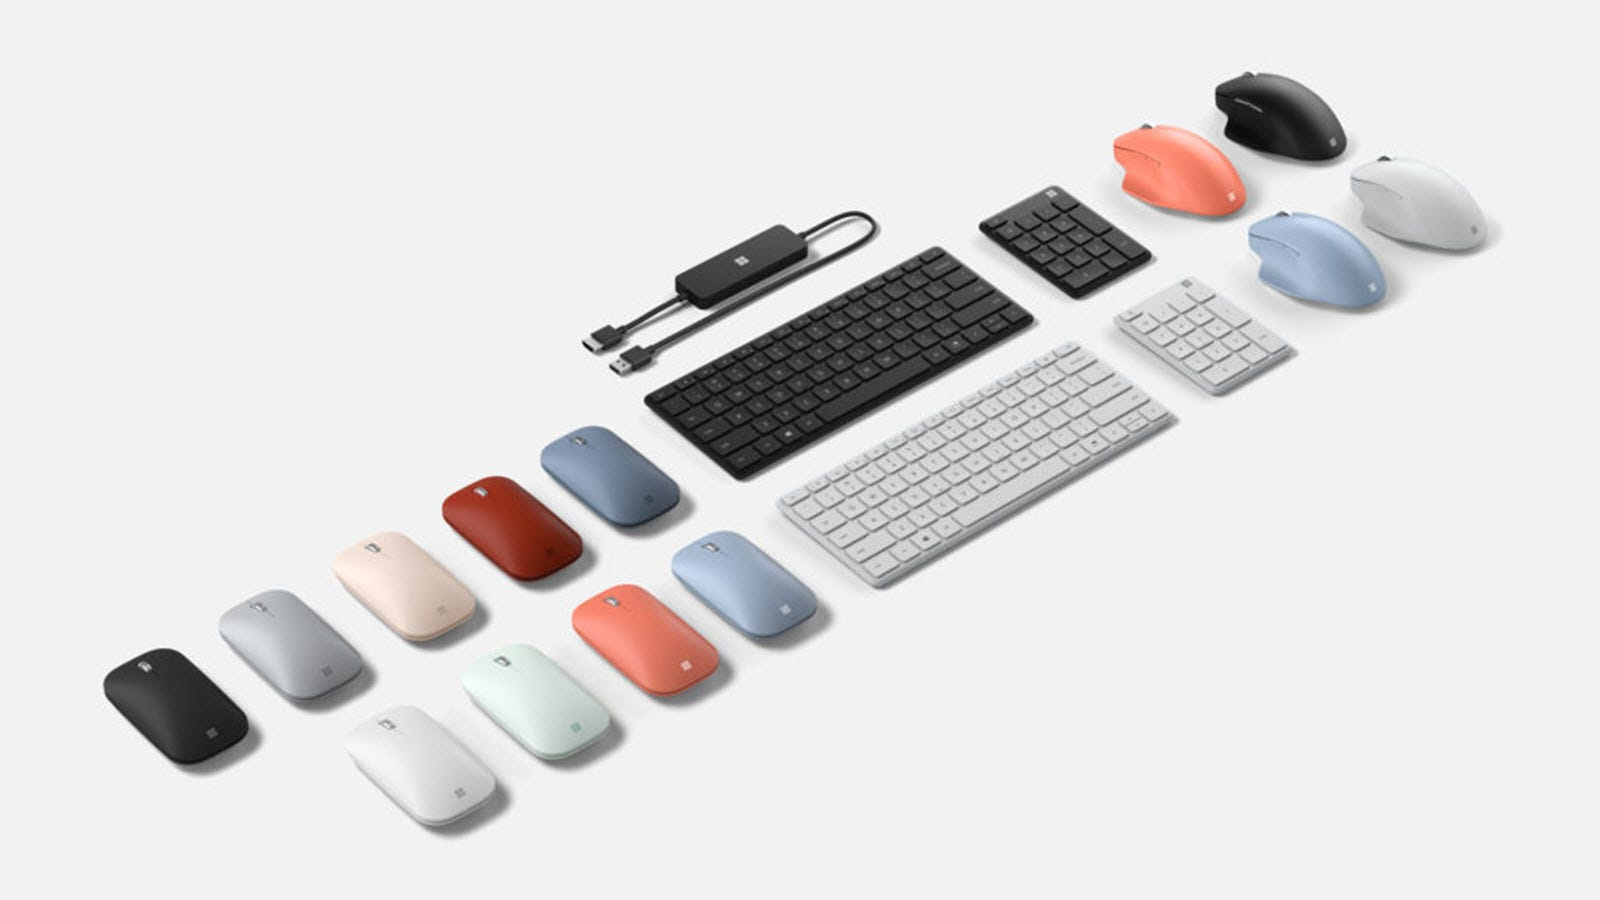 Microsoft keyboards, numpads, an ergonomic mouse and a mobile mouse, and a 4K Wireless display adapter.